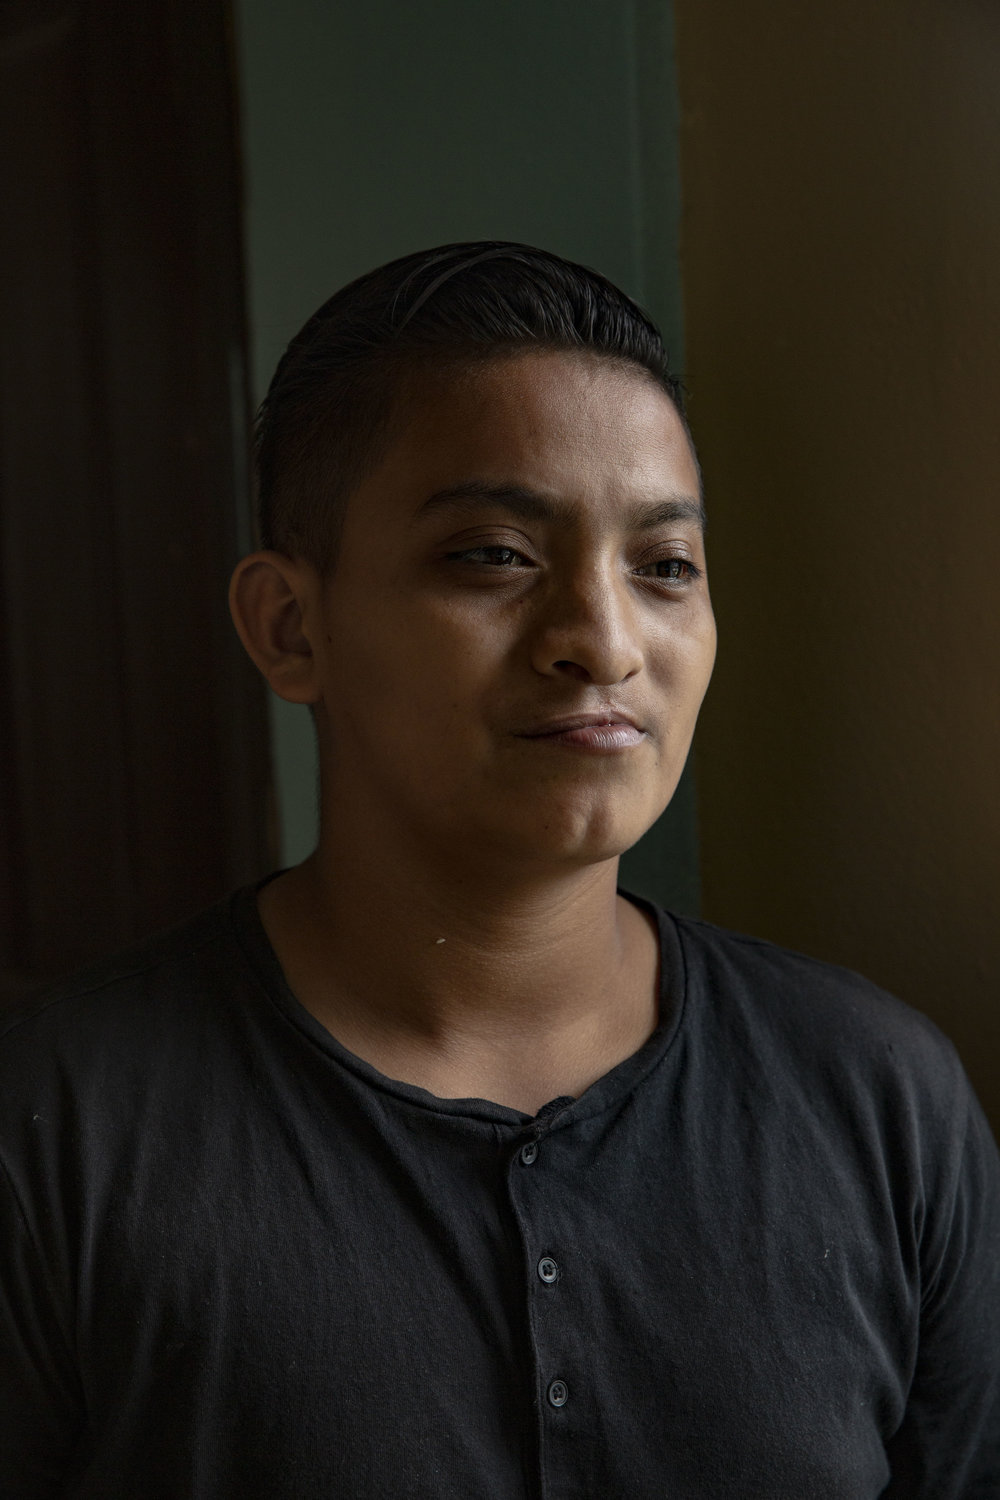 "Ronnie Martinez Reyes, 21, operated four times for cleft lip and palate at the Ruth Paz Clinic in San Pedro Sula. He took the initiative to undertake the surgery. ""Now I can breath normally and eat well"", he says."